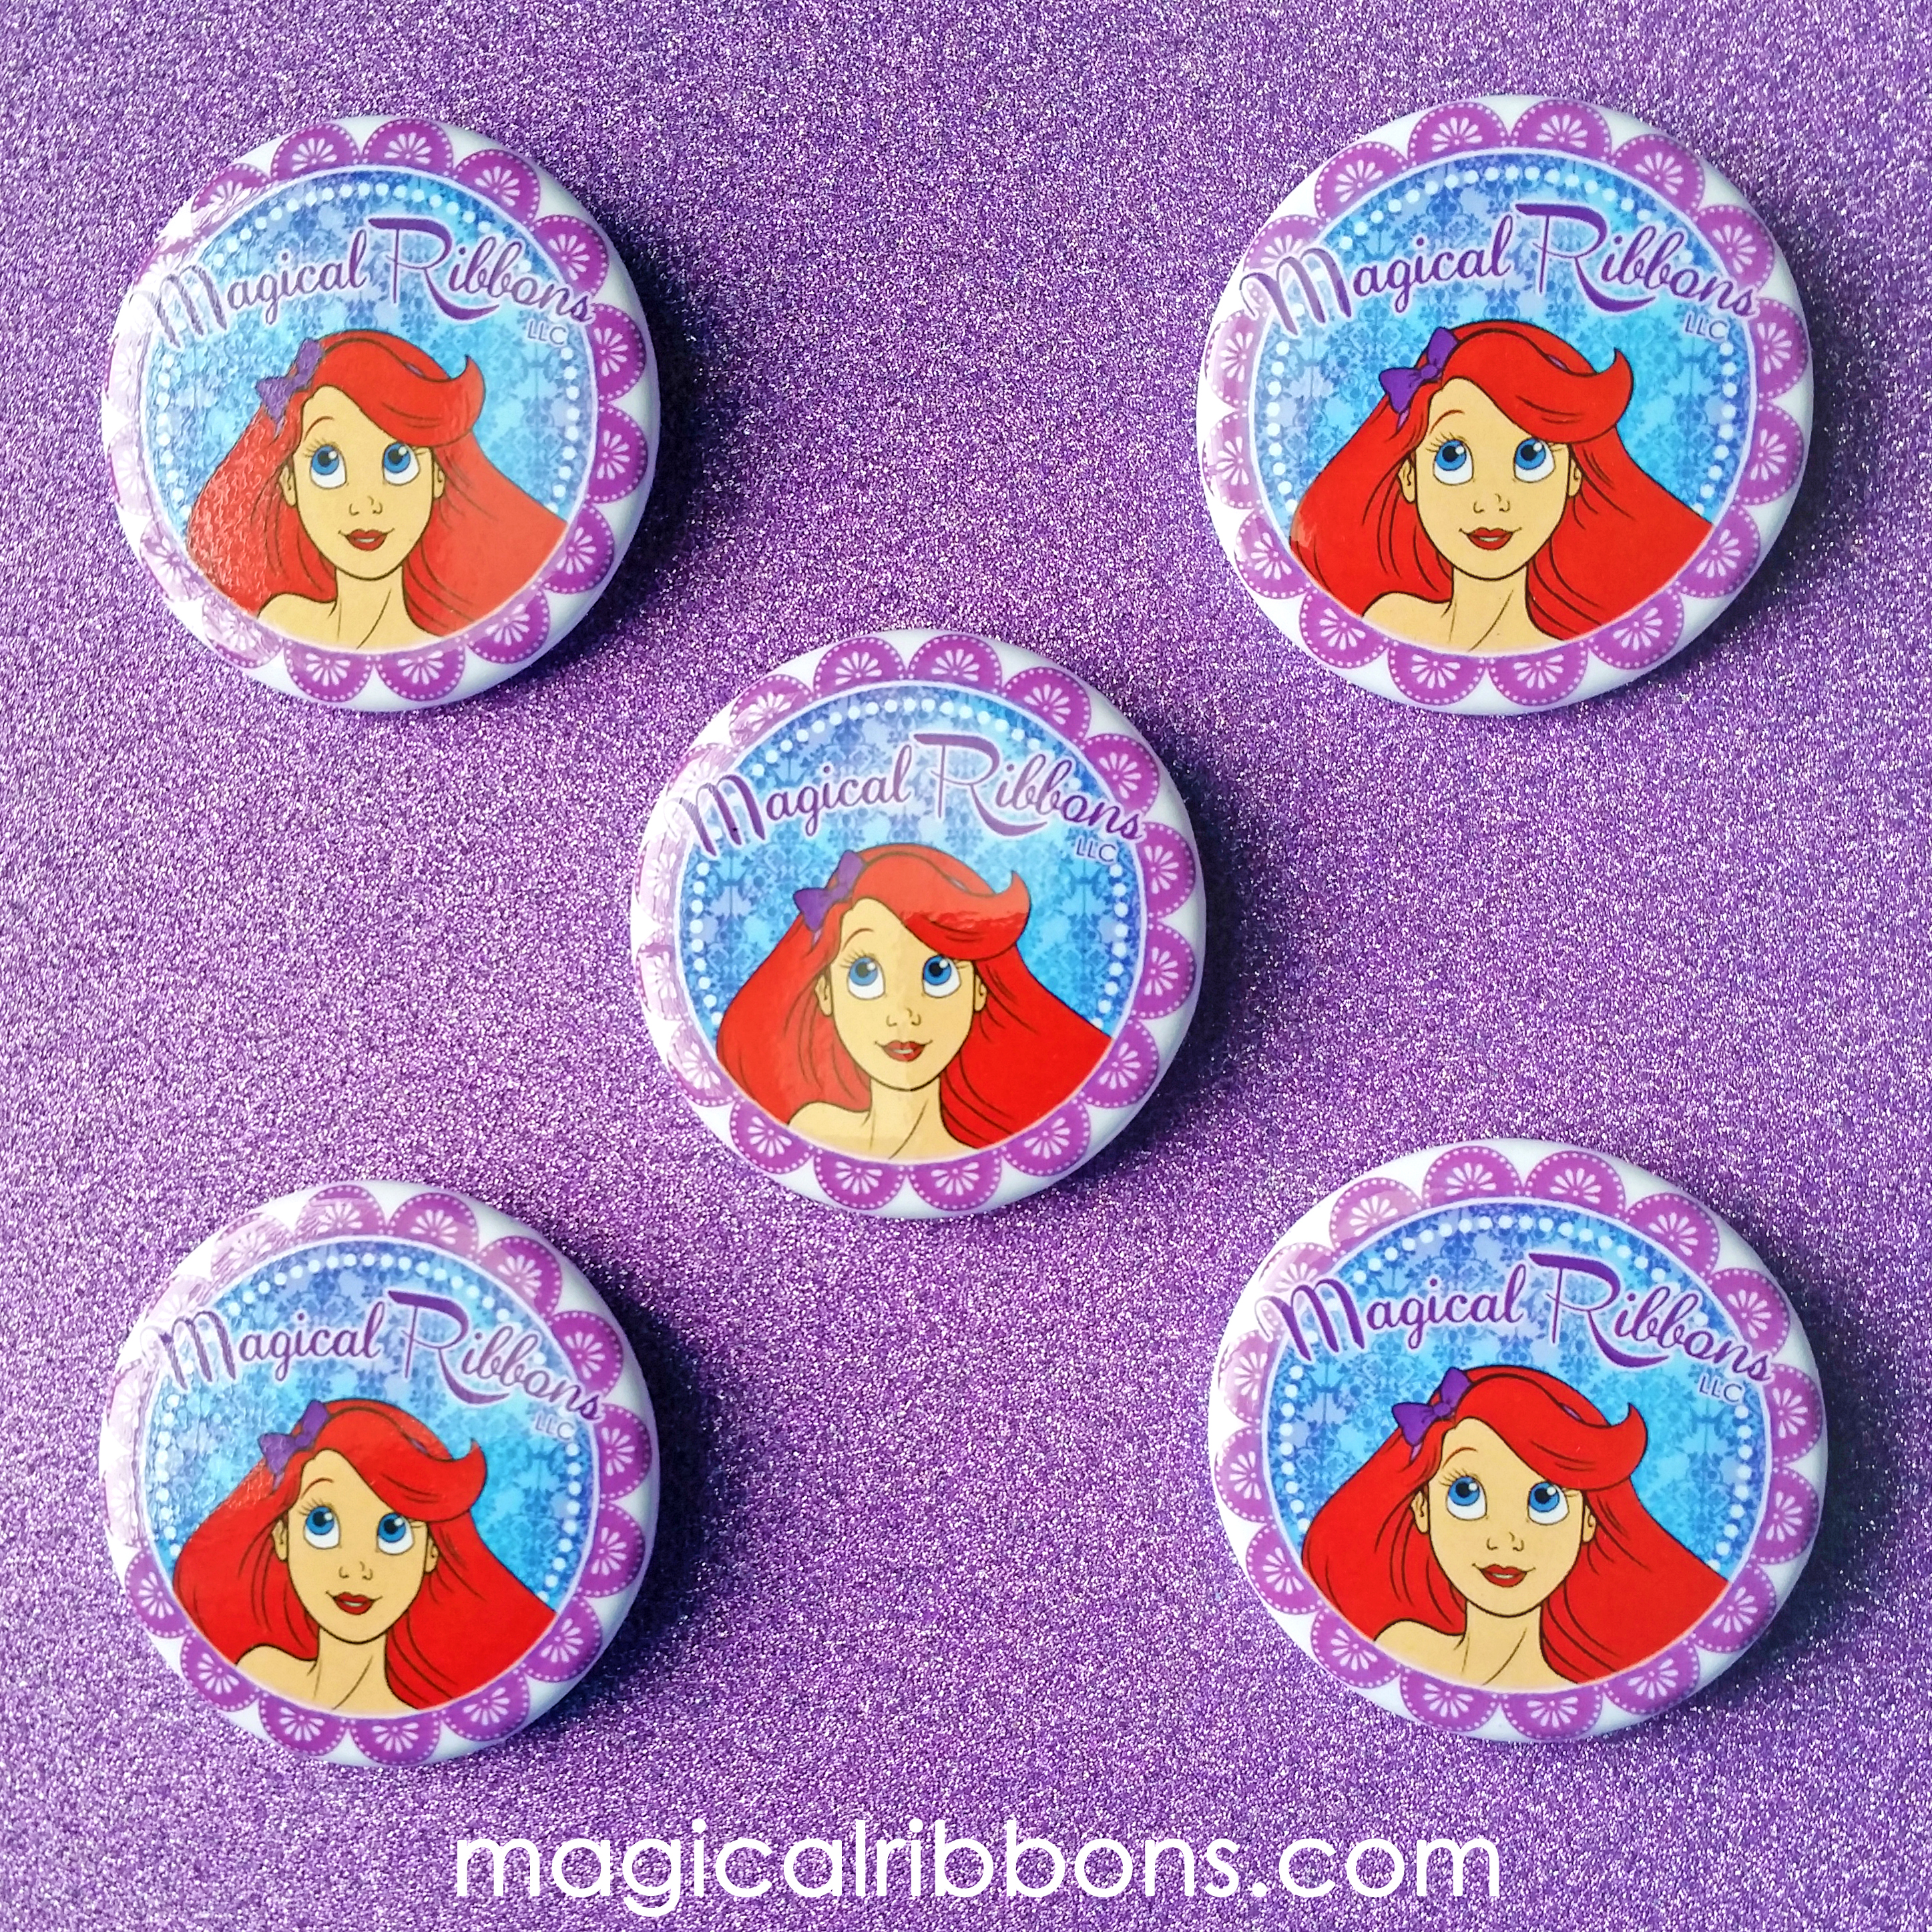 magical-ribbons-buttons